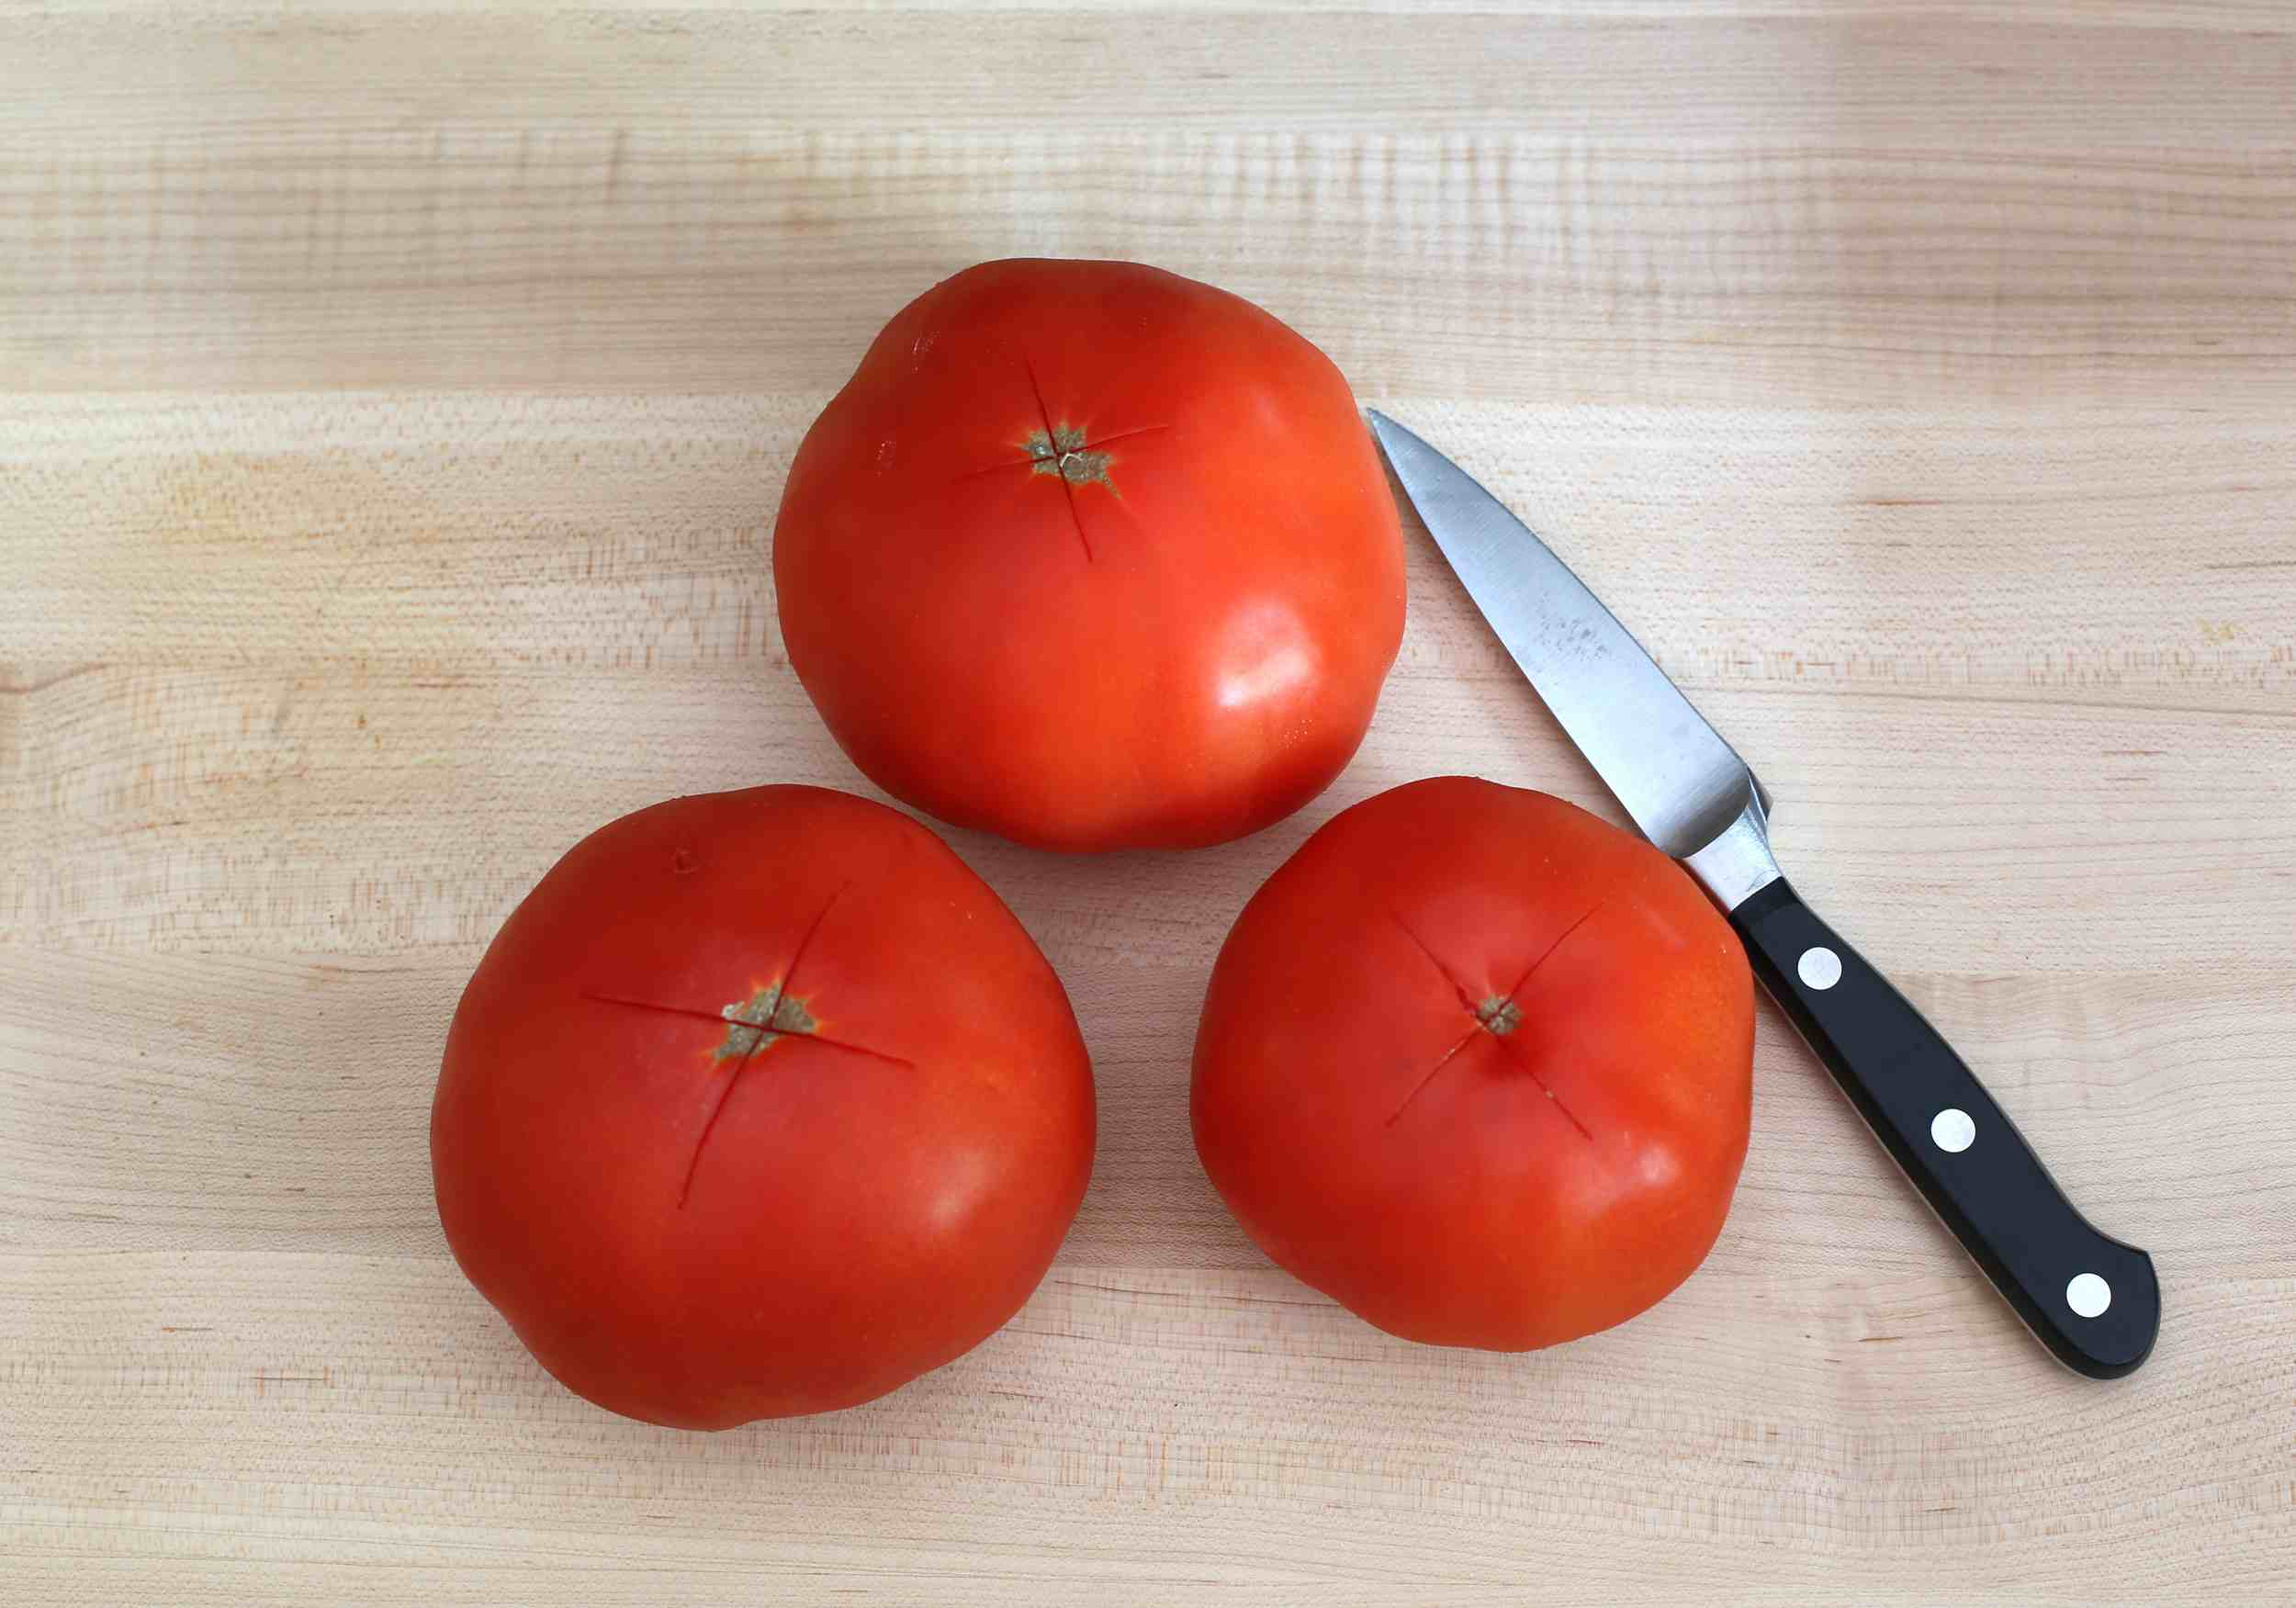 Tomatoes and knife on wood table